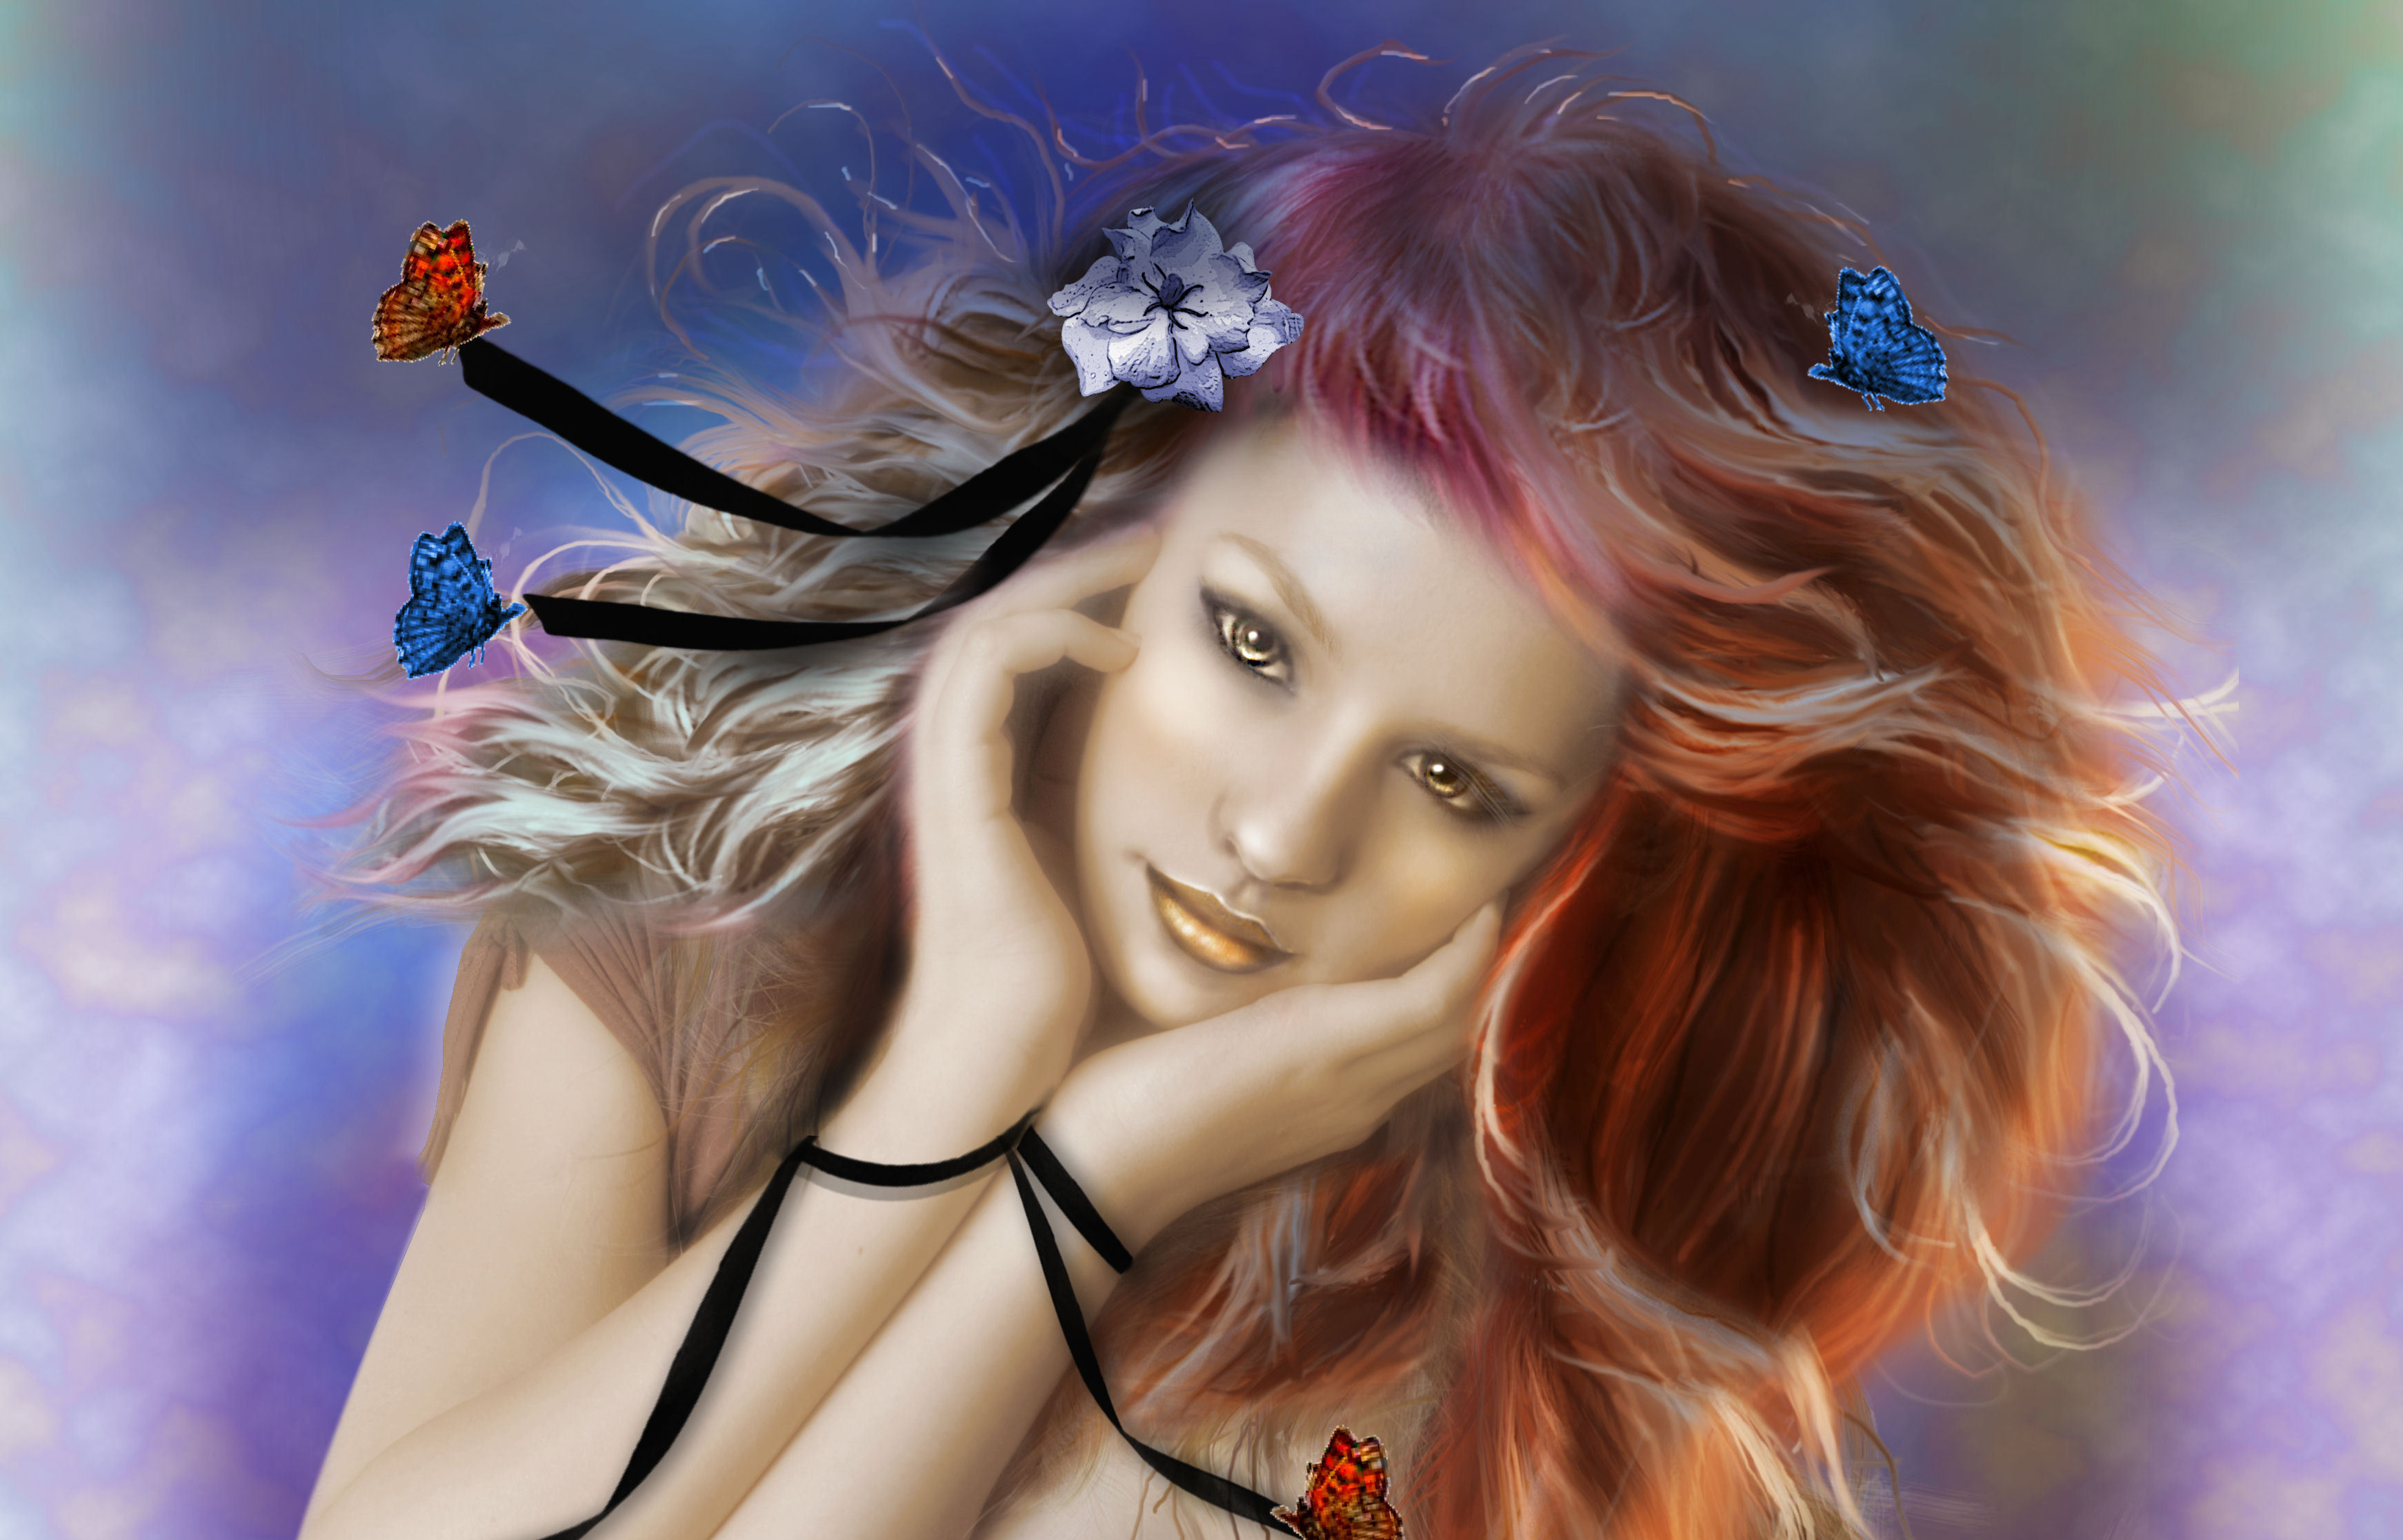 #butterflies, #girl, #butterfly, #ribbons, #hair, # - Painting Of Butterfly Woman , HD Wallpaper & Backgrounds